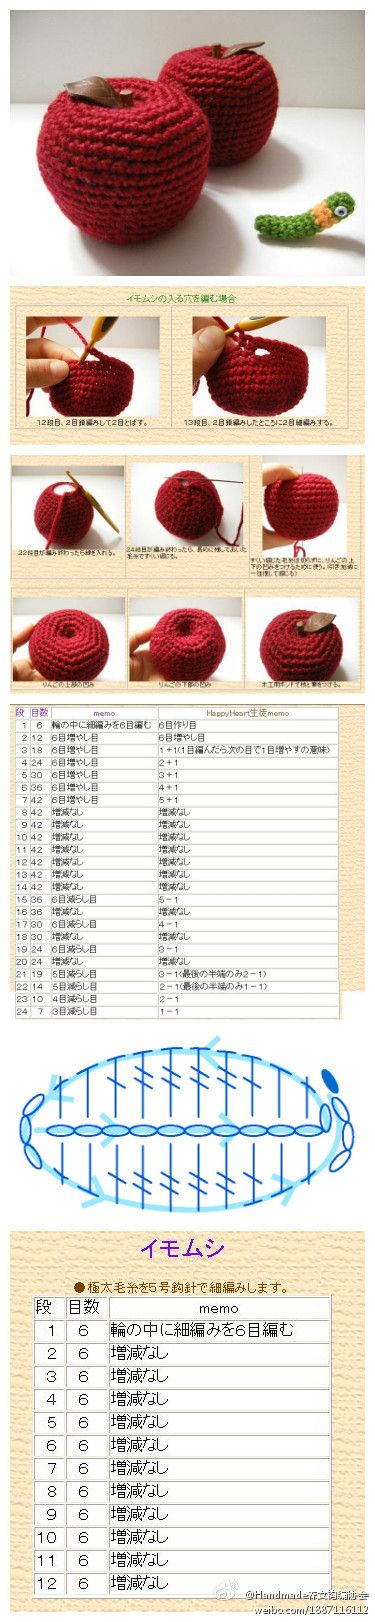 Manzana tejida  Woven apple  http://www.duitang.com/people/mblog/28327015/detail/